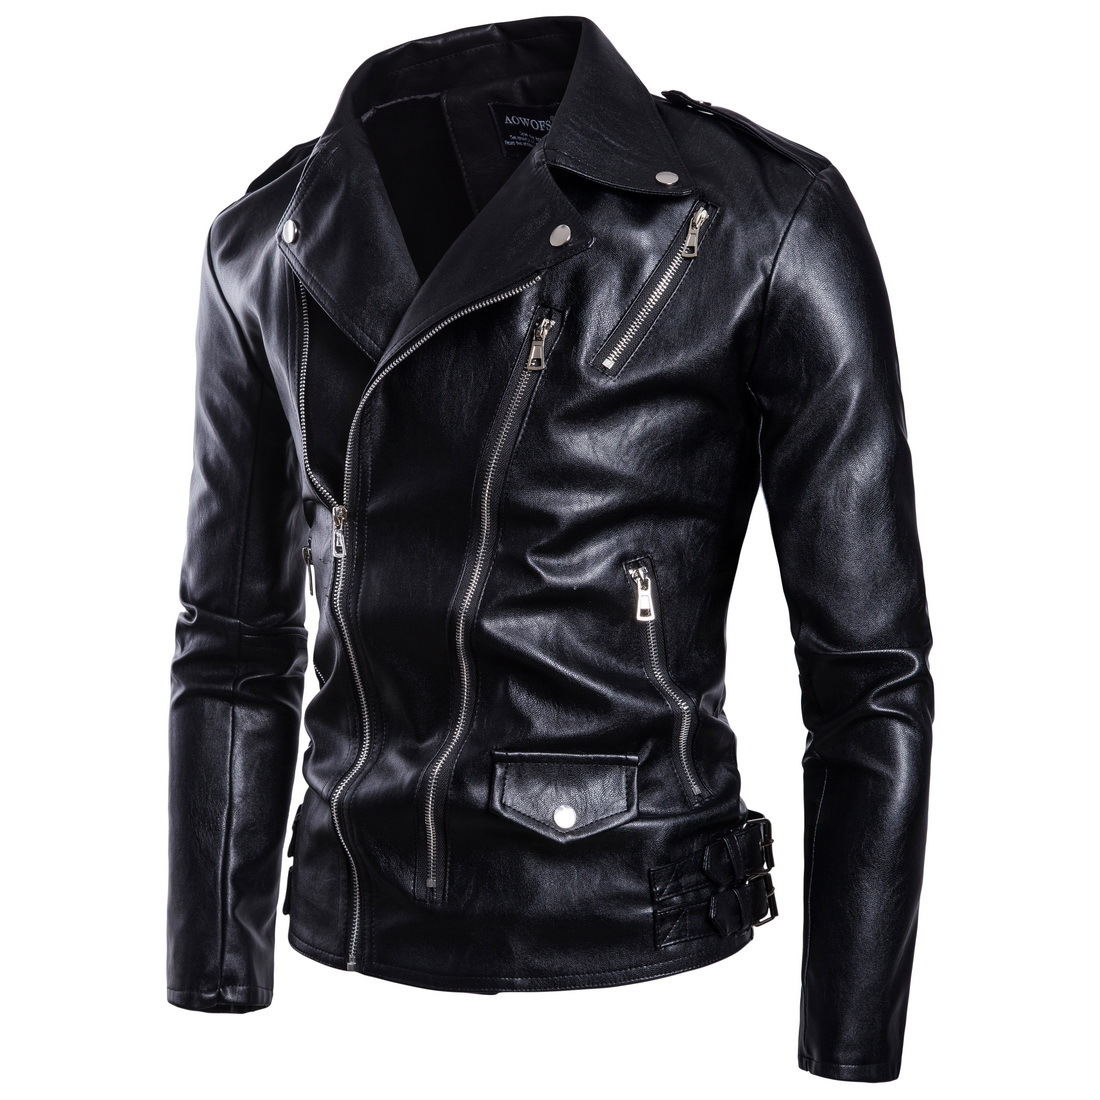 Autumn New Style High-End Men Locomotive Large Size Leather Coat Multi-Zipper Leather Jacket Coat M-5XL B027